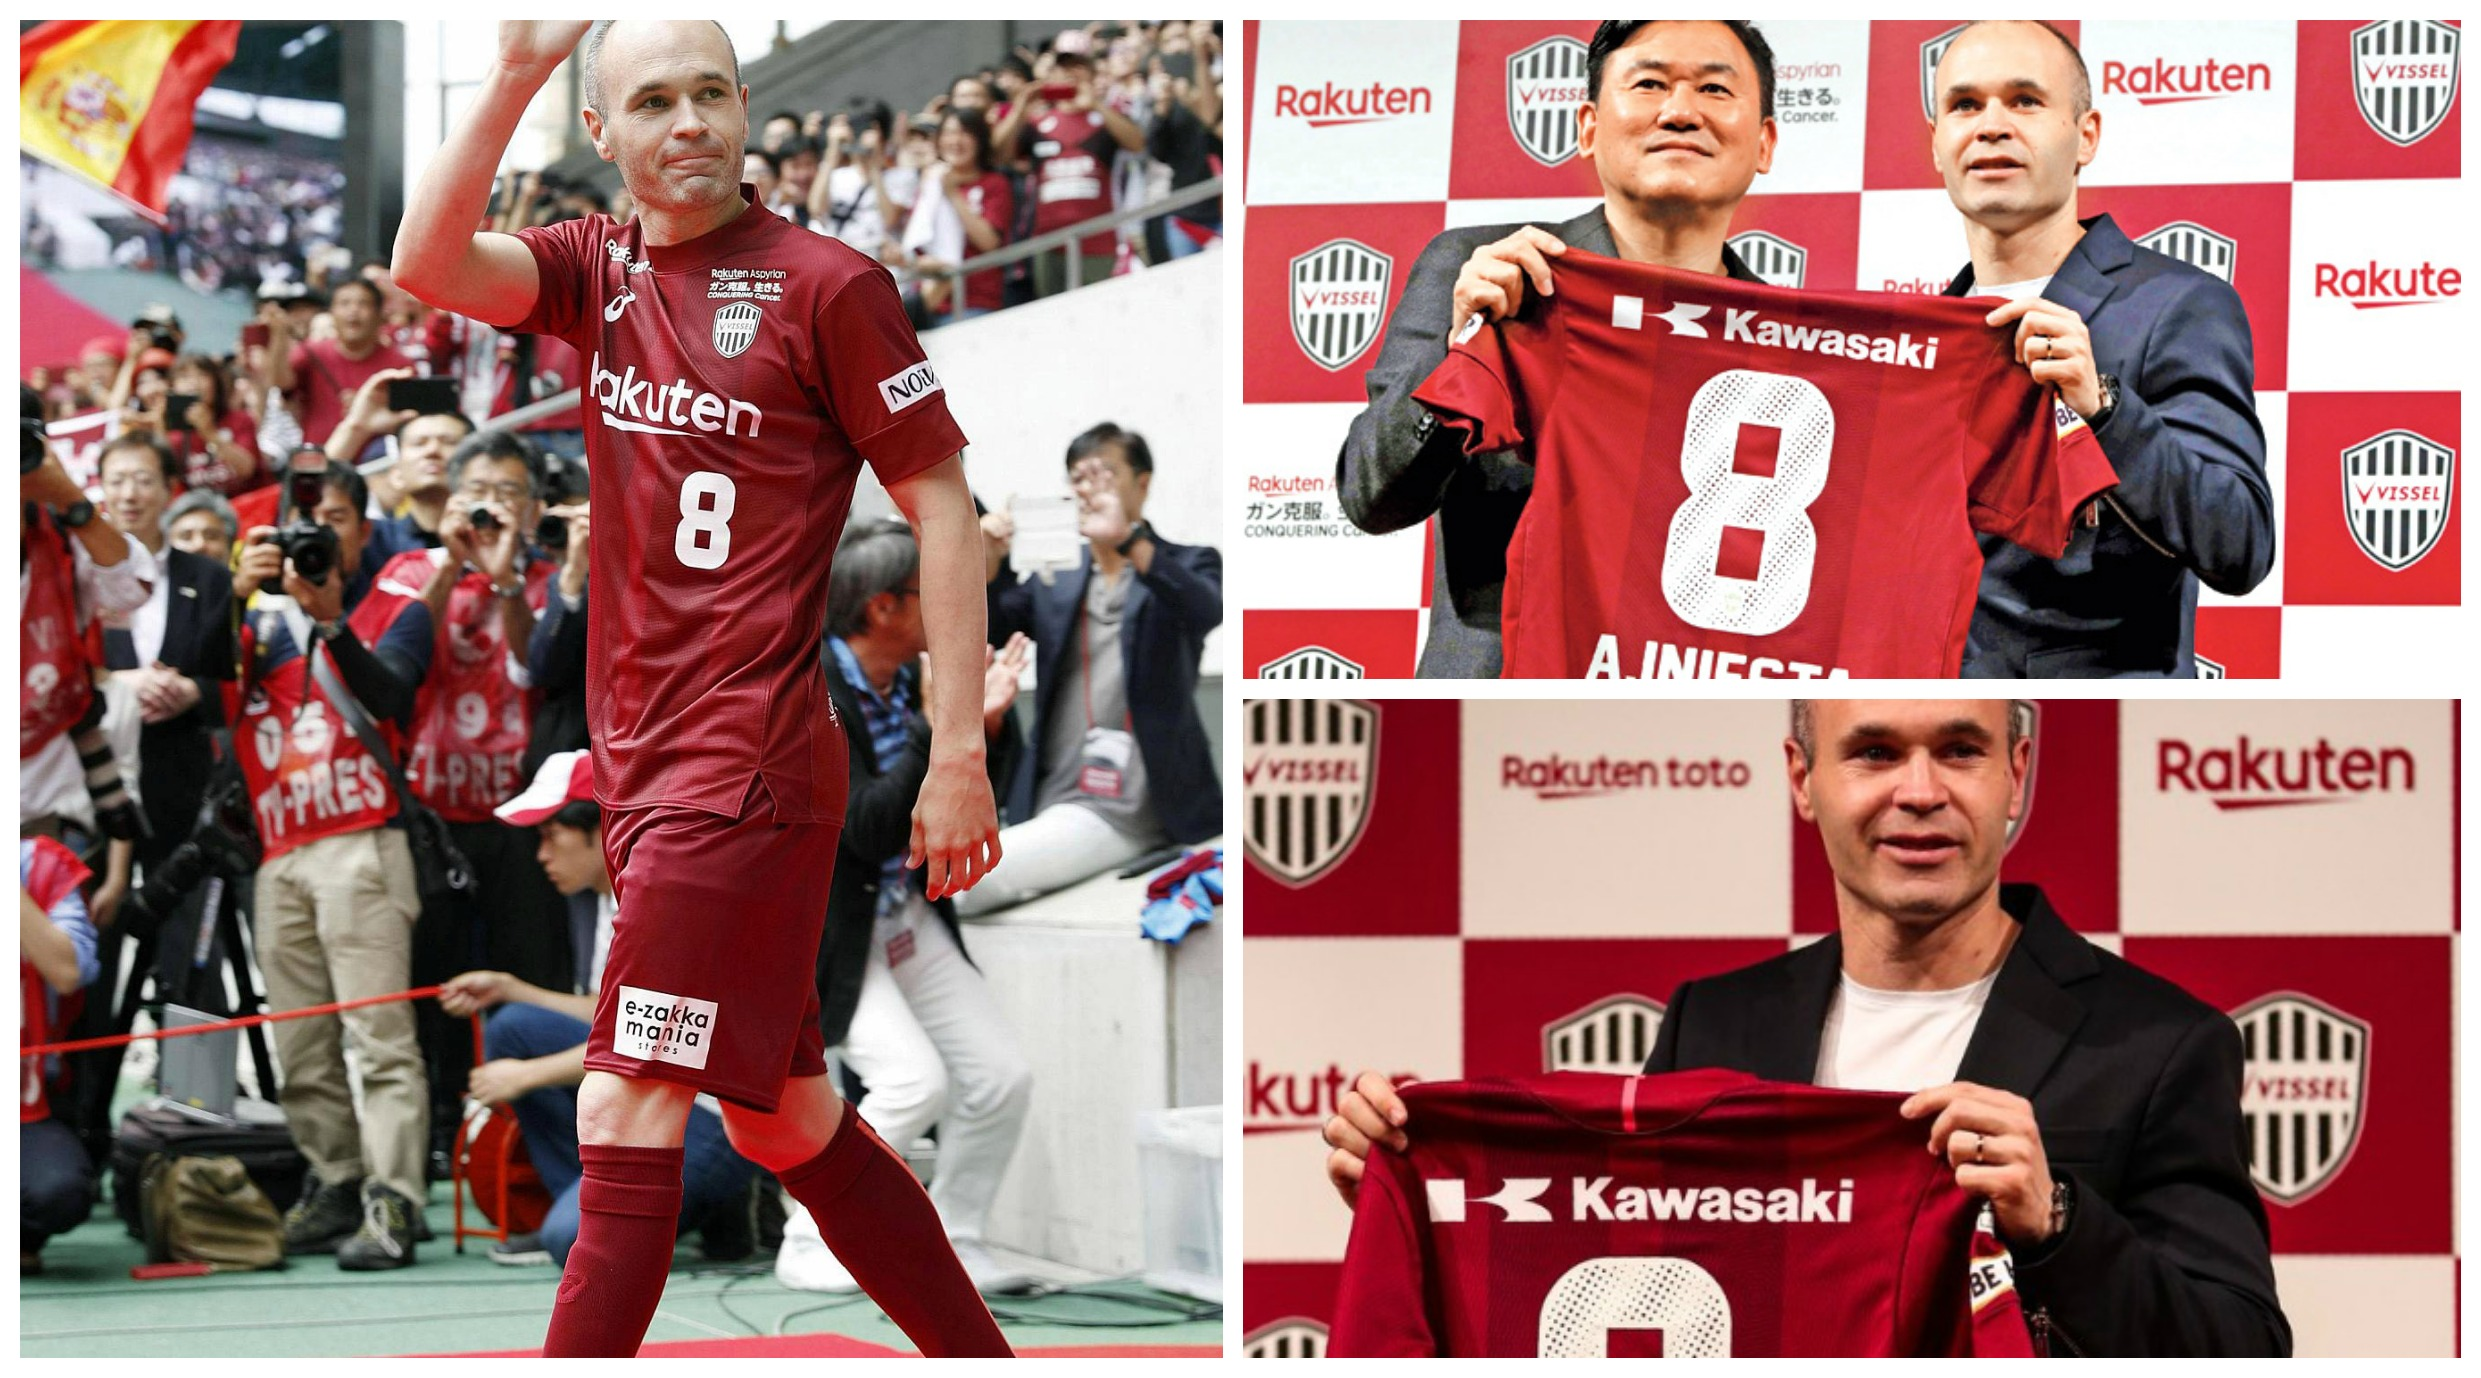 Andres Iniesta Moves to Japanese Club Vissel Kobe